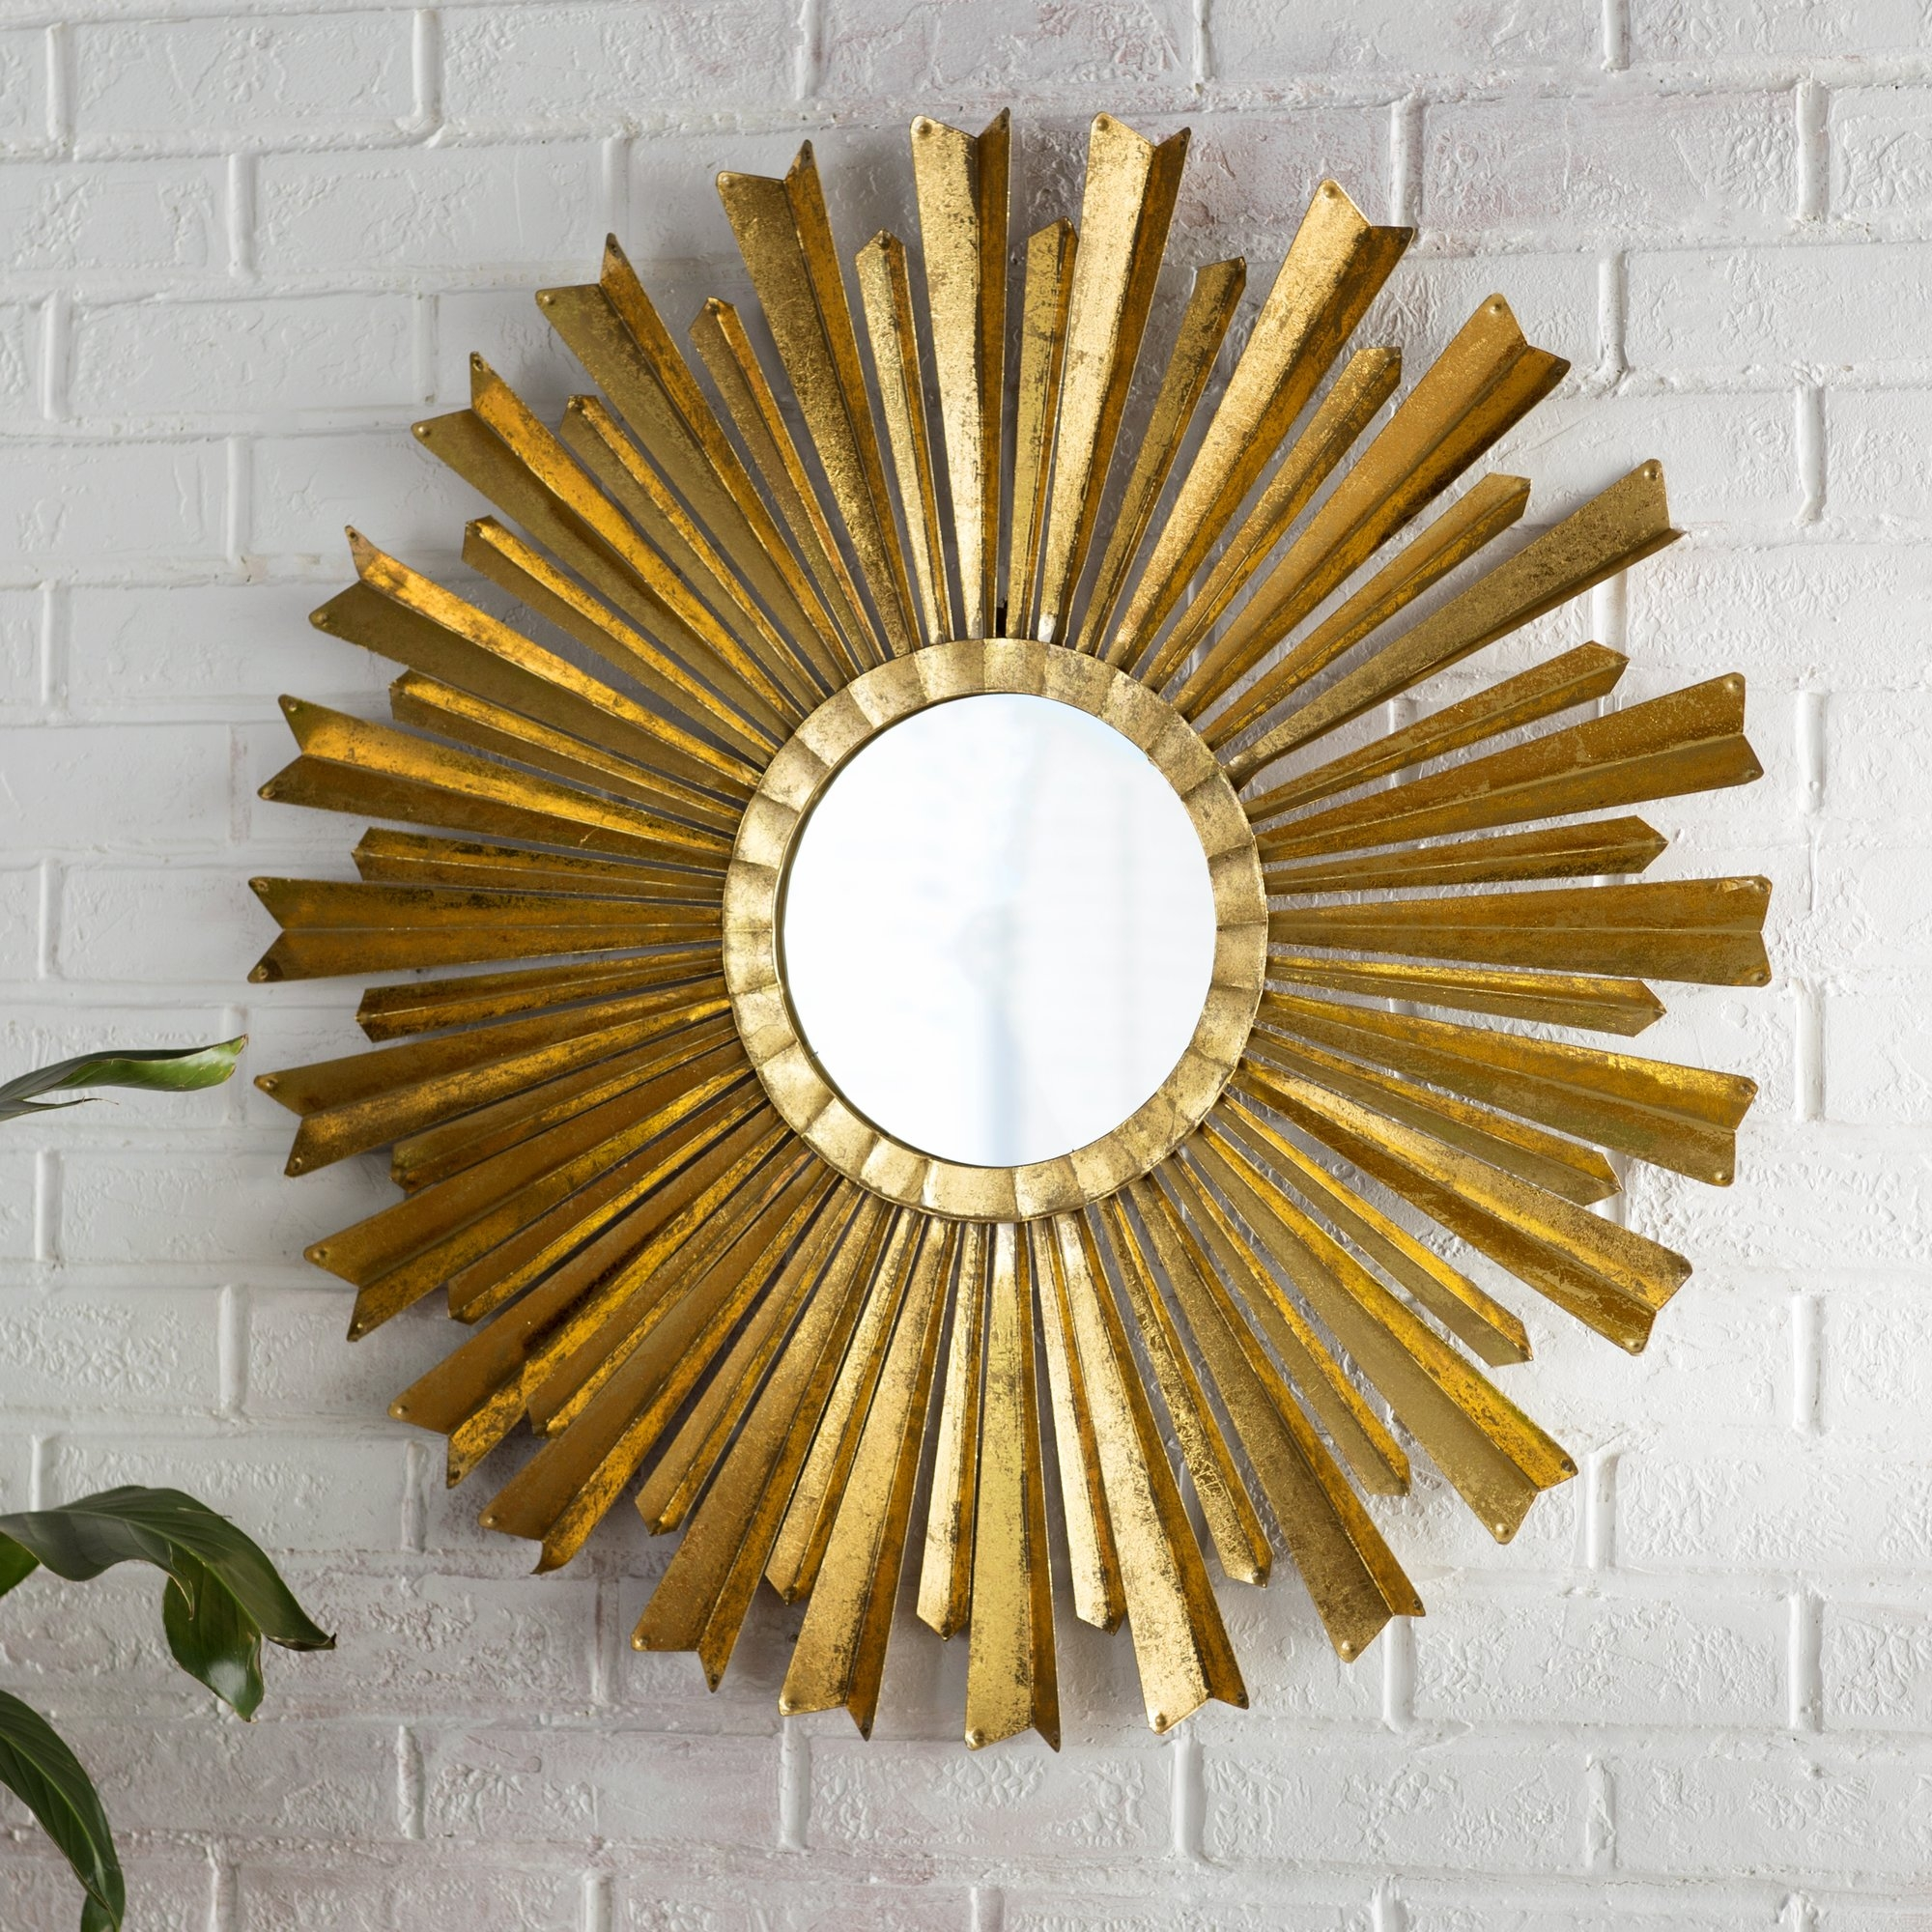 Sunburst Mirrors Youll Love Wayfair Intended For Large Sun Shaped Mirror (Image 13 of 15)